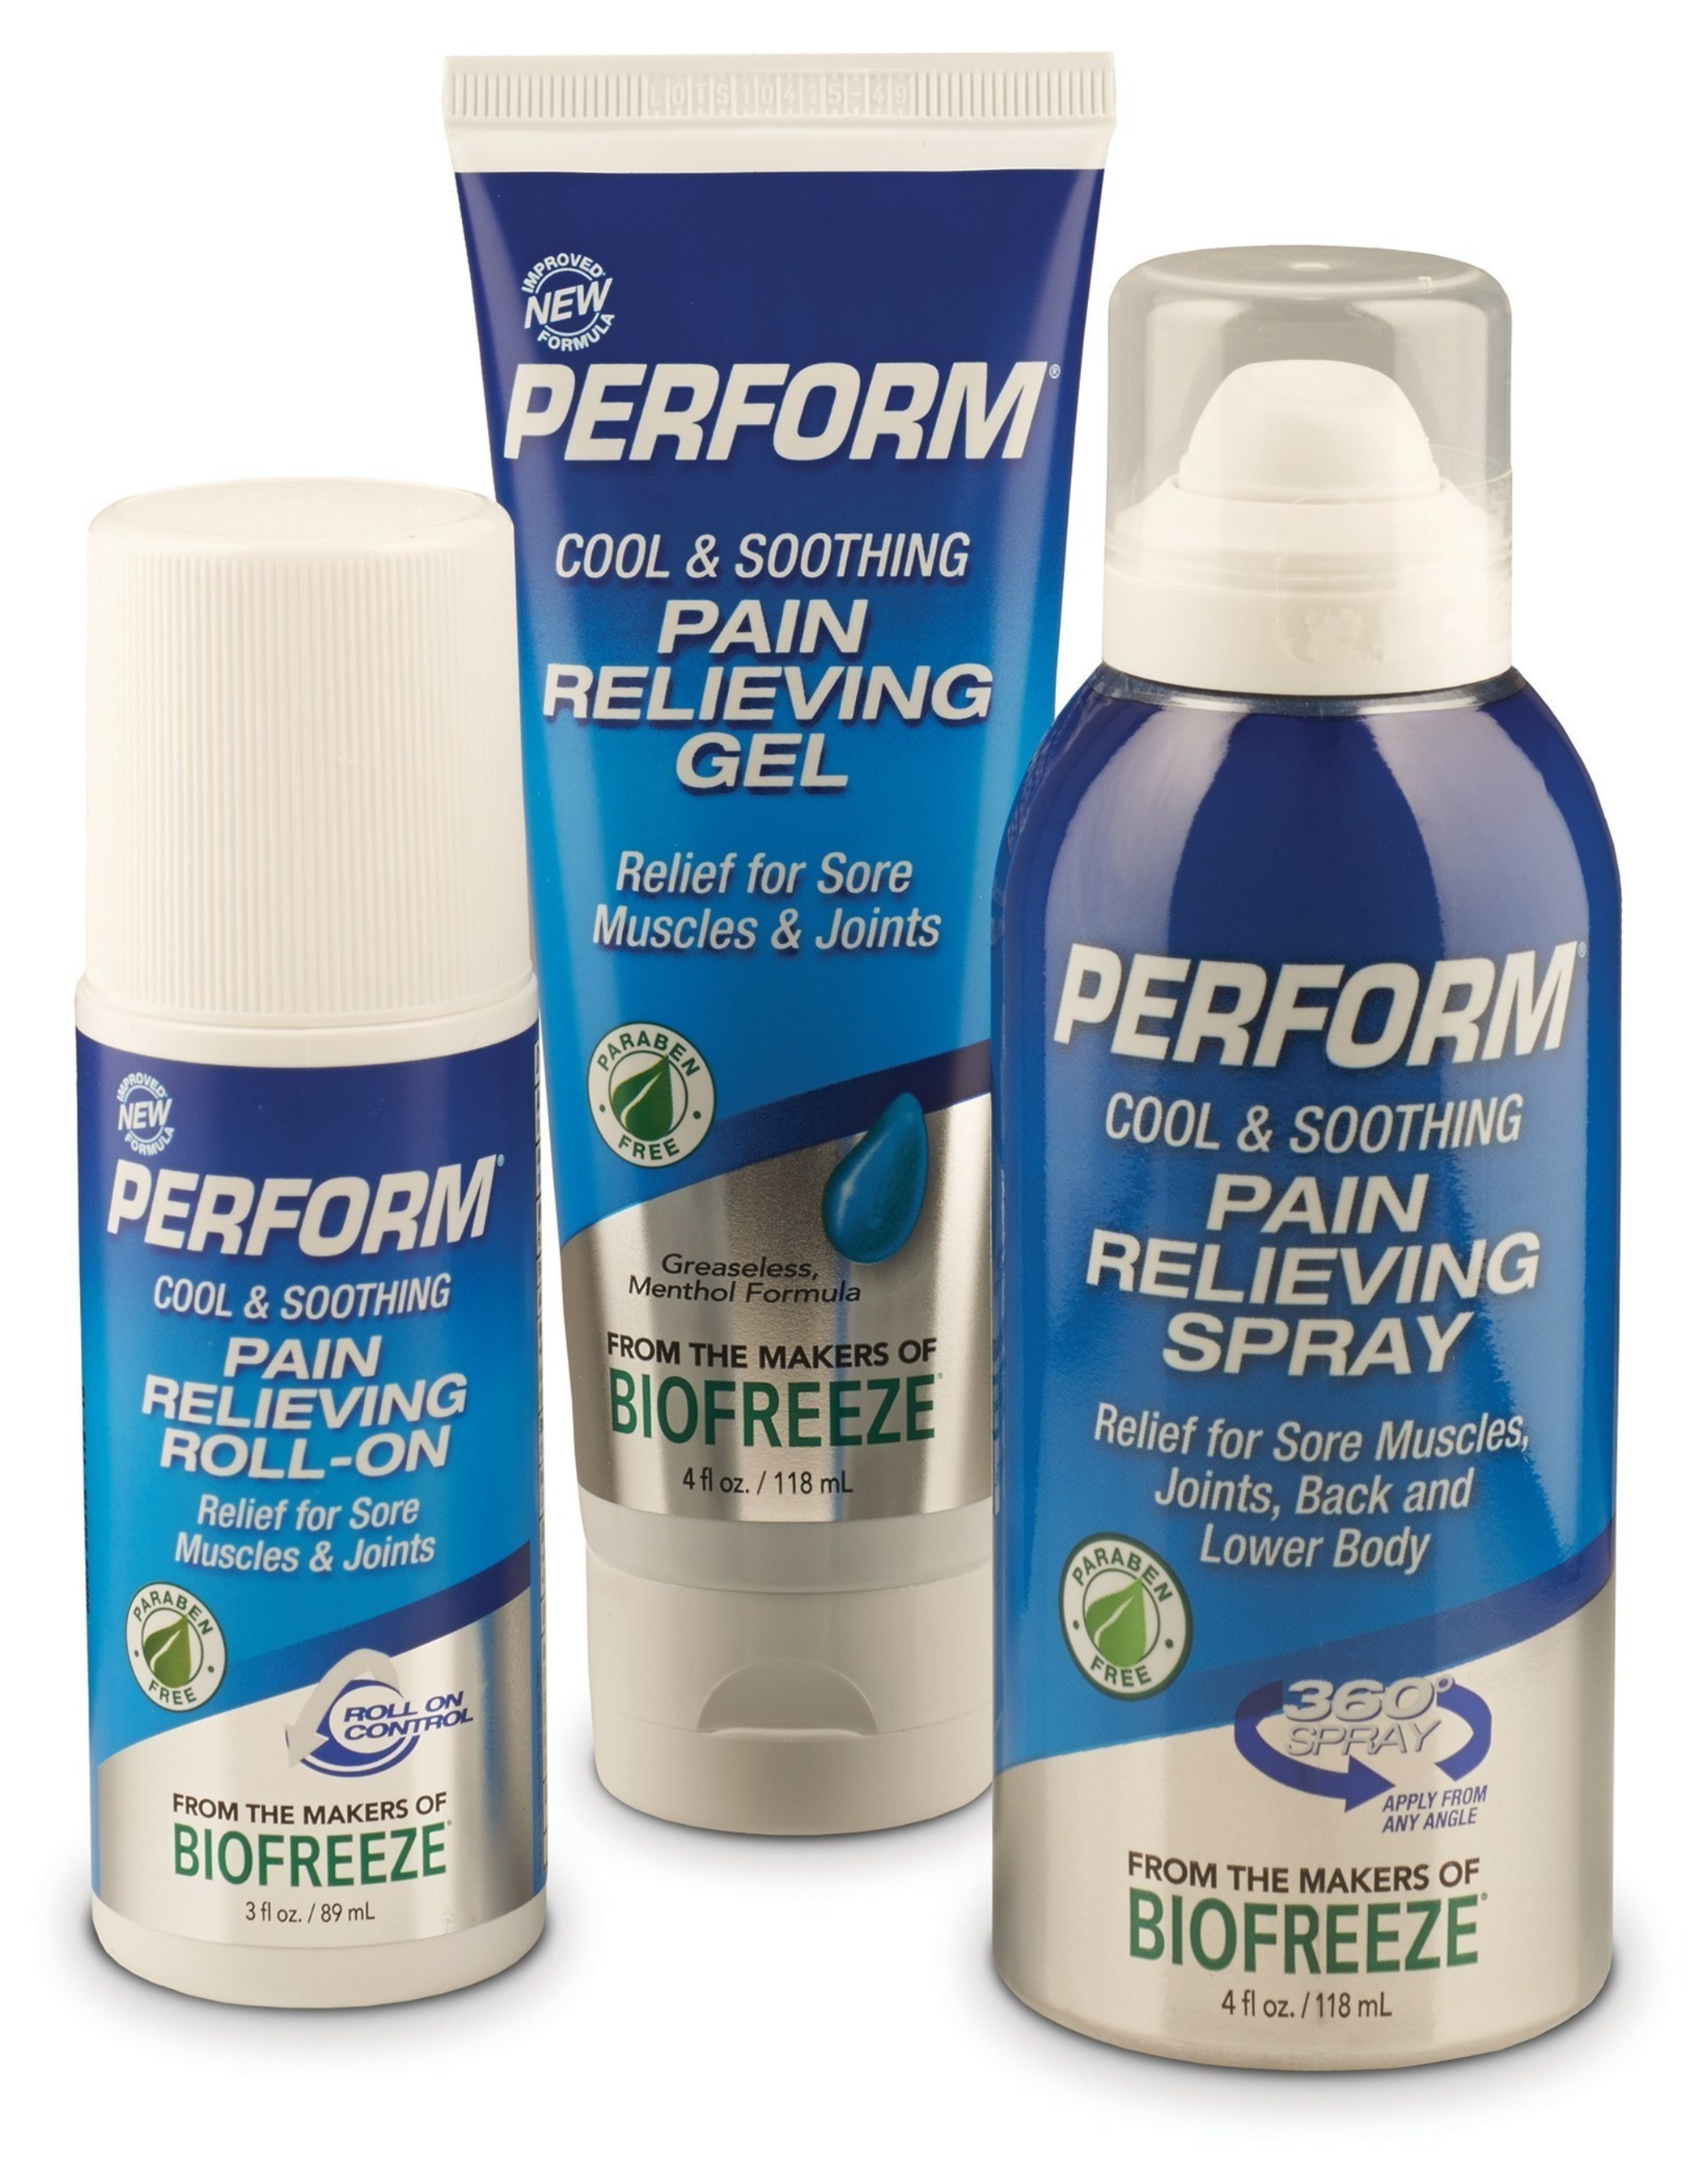 New and improved formula Perform(R) Pain Reliever-- a cooling topical used as an immediate relief for pain related to activity, injury or training.